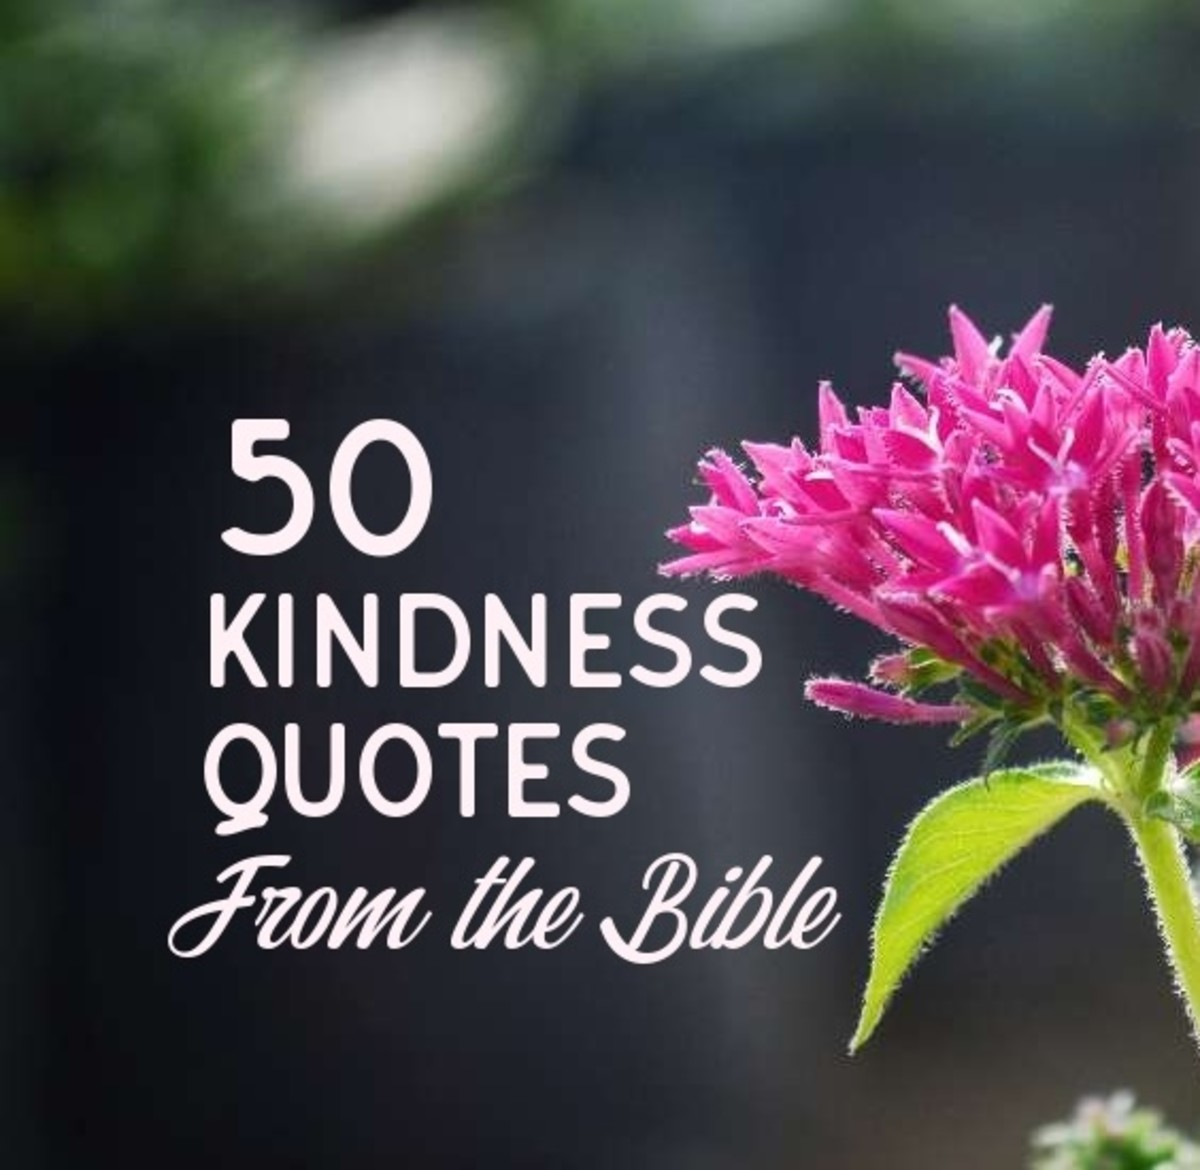 50 Kindness Quotes from the Holy Bible